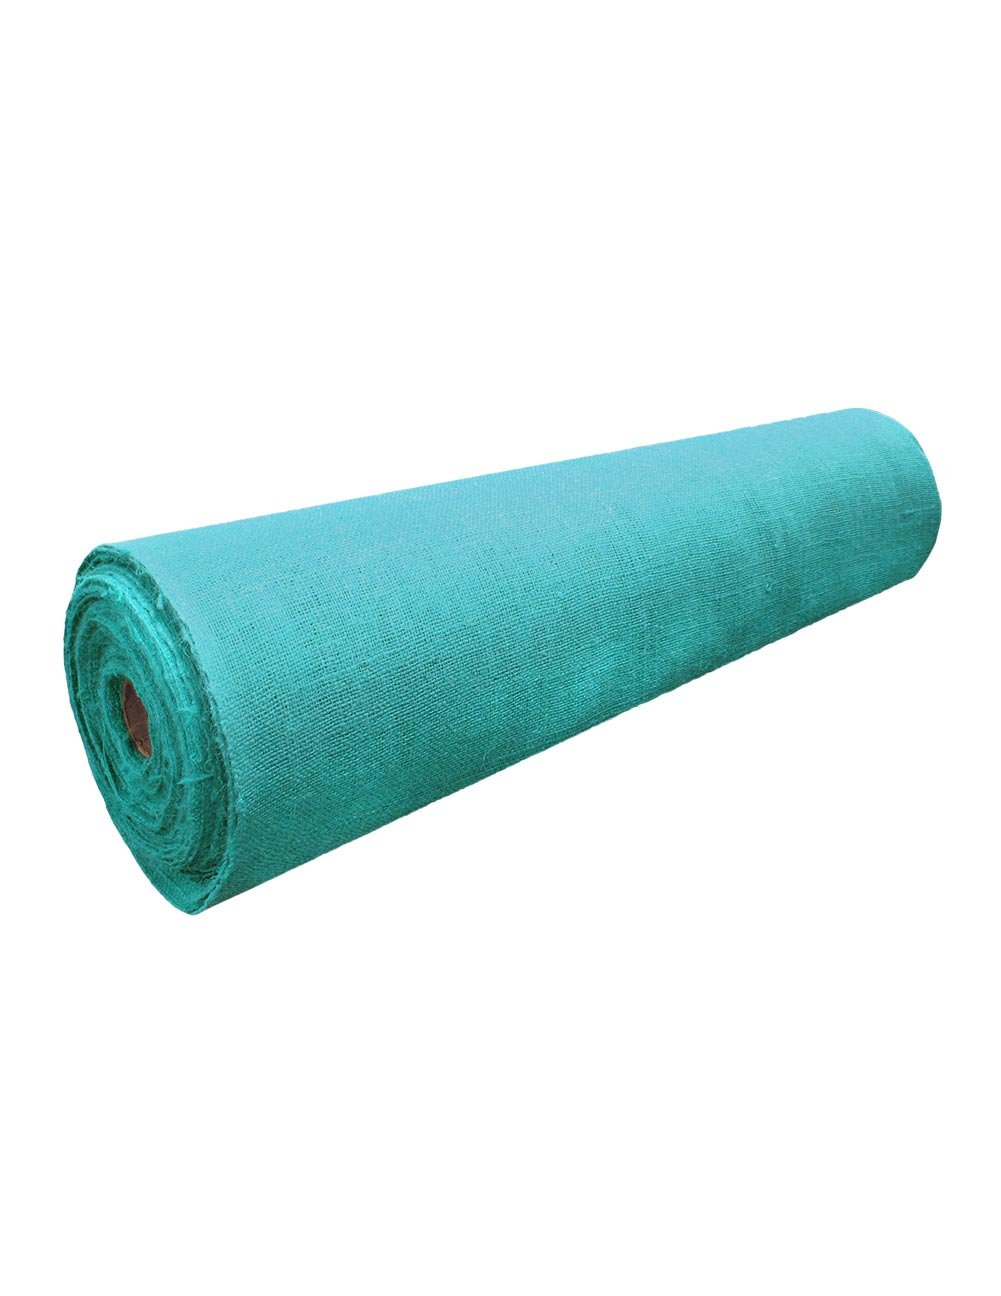 60 Inches Wide X 5 Yards Long Burlap, Jade The Felt Store